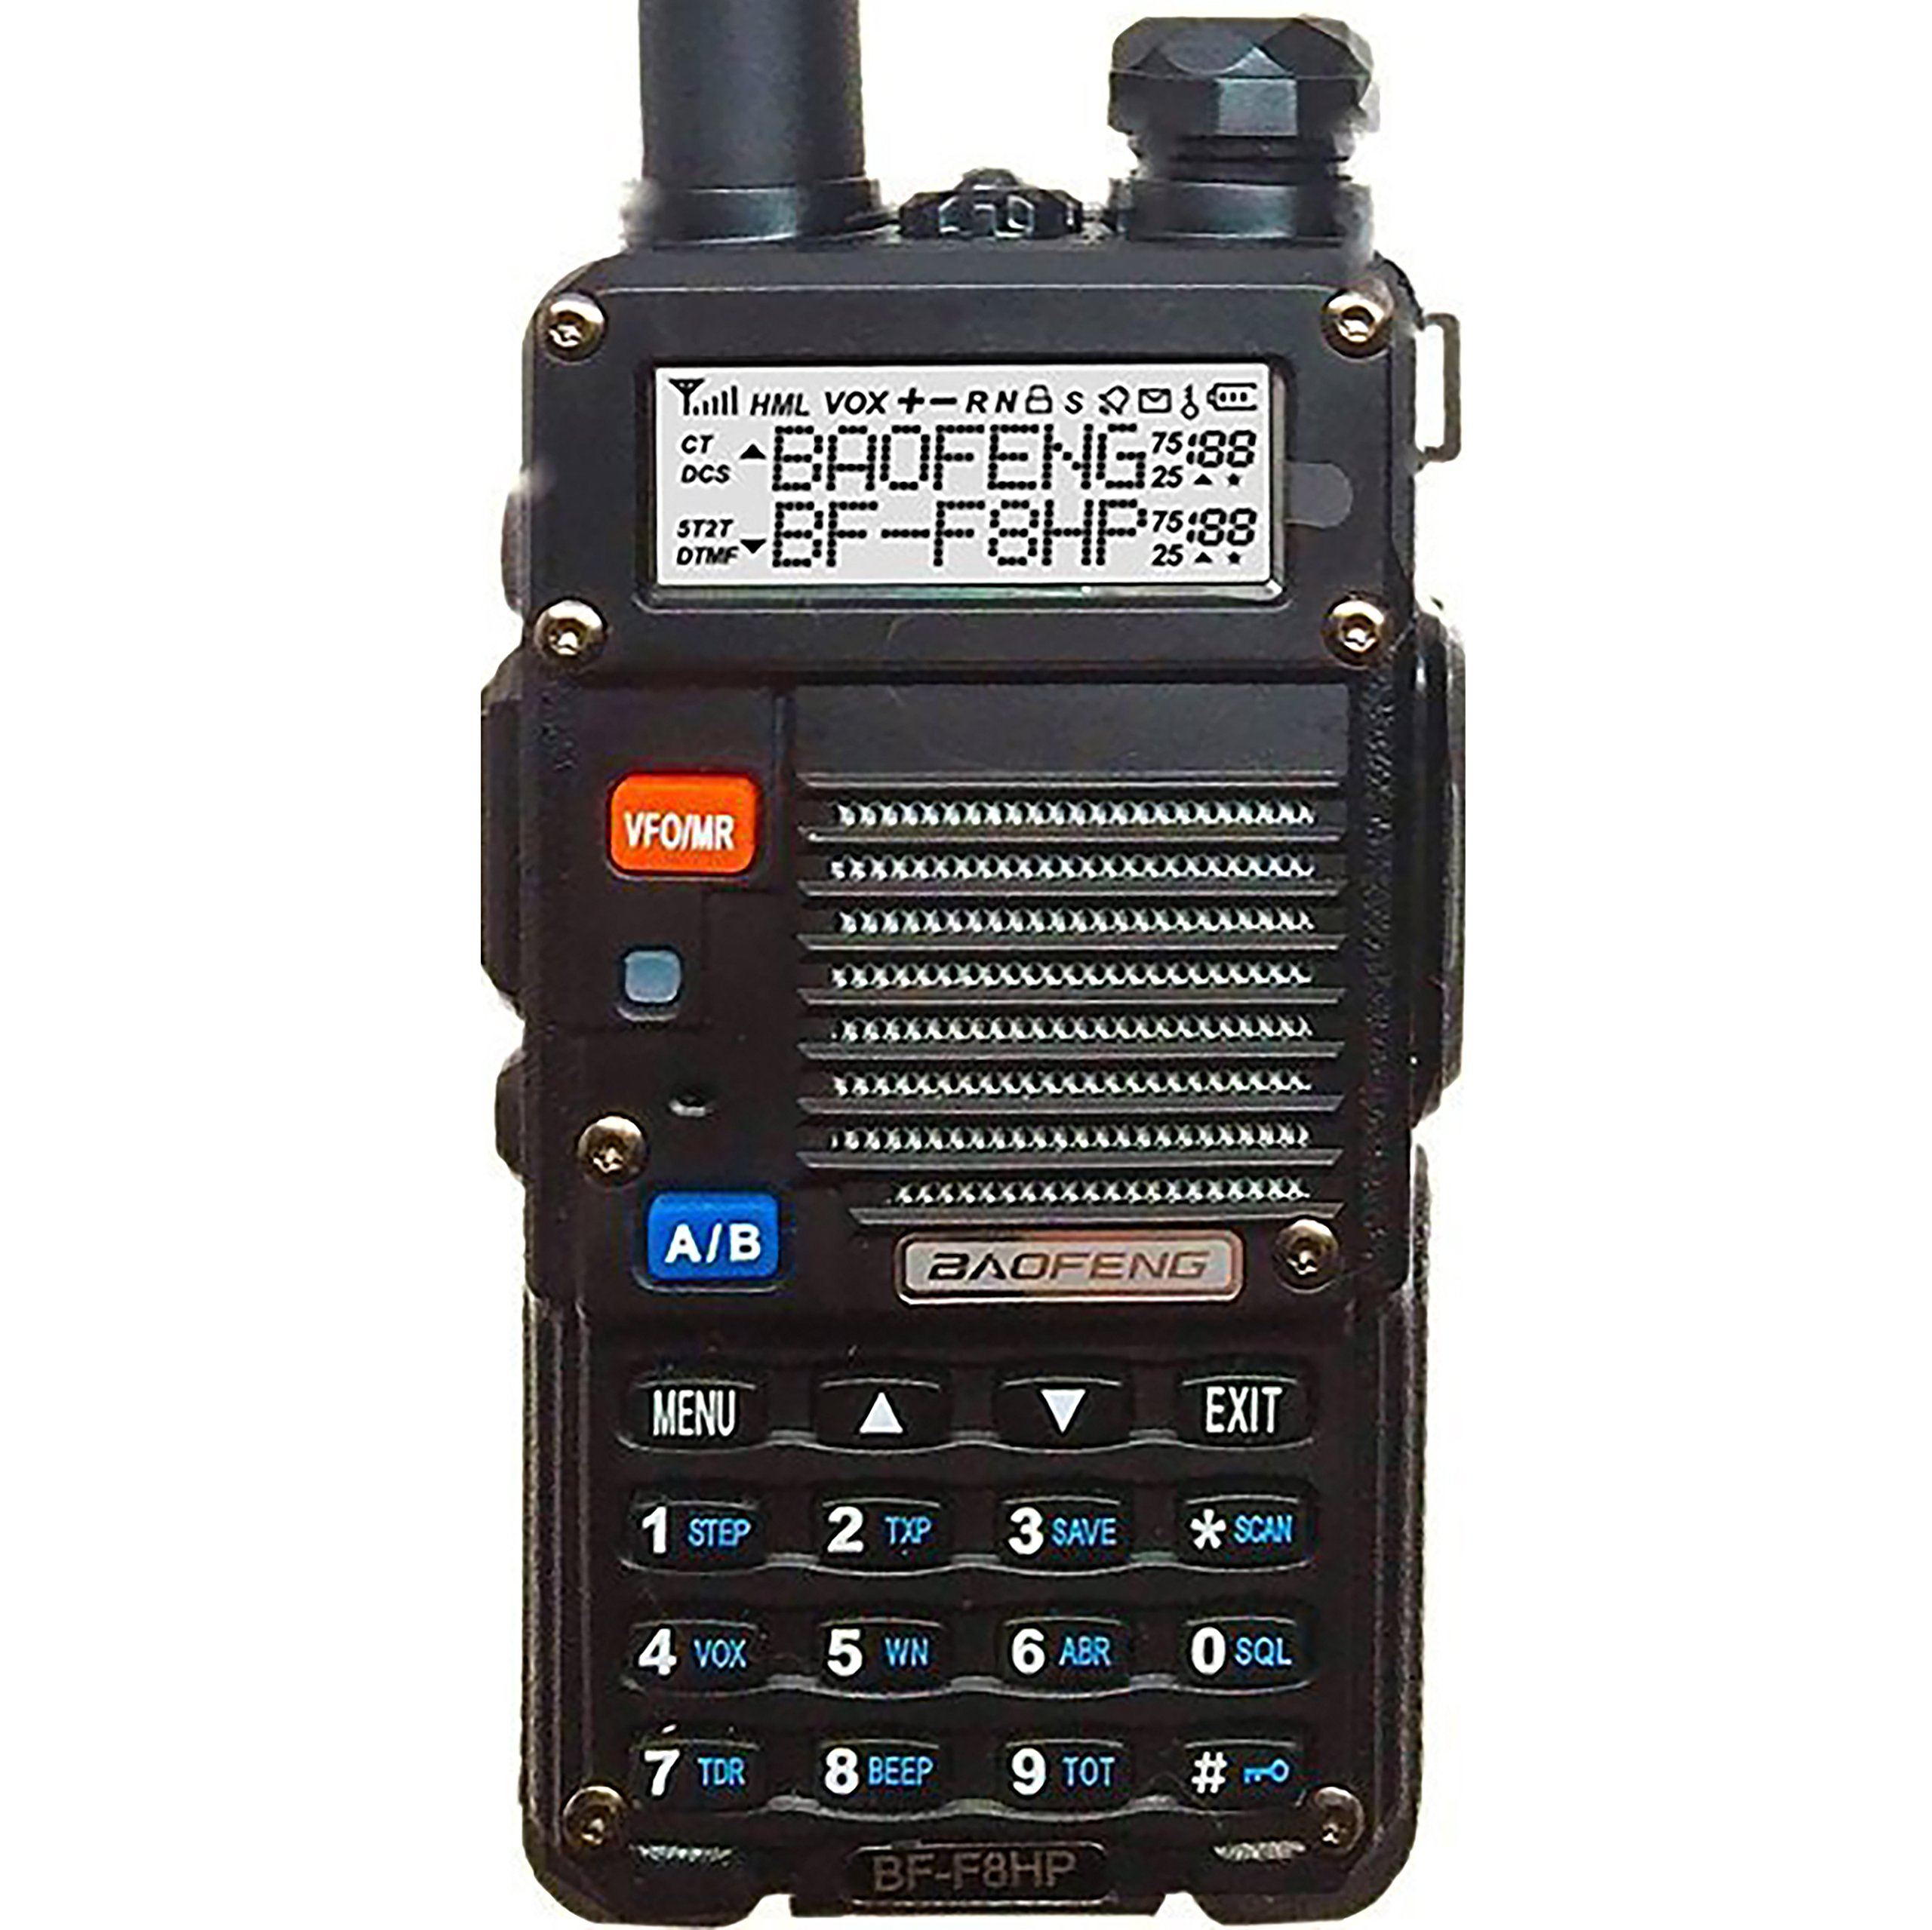 BaoFeng BF-F8HP (UV-5R 3rd Gen) 8-Watt Dual Band Two-Way Radio (136-174MHz VHF & 400-520MHz UHF) Includes Full Kit with Large Battery by BAOFENG